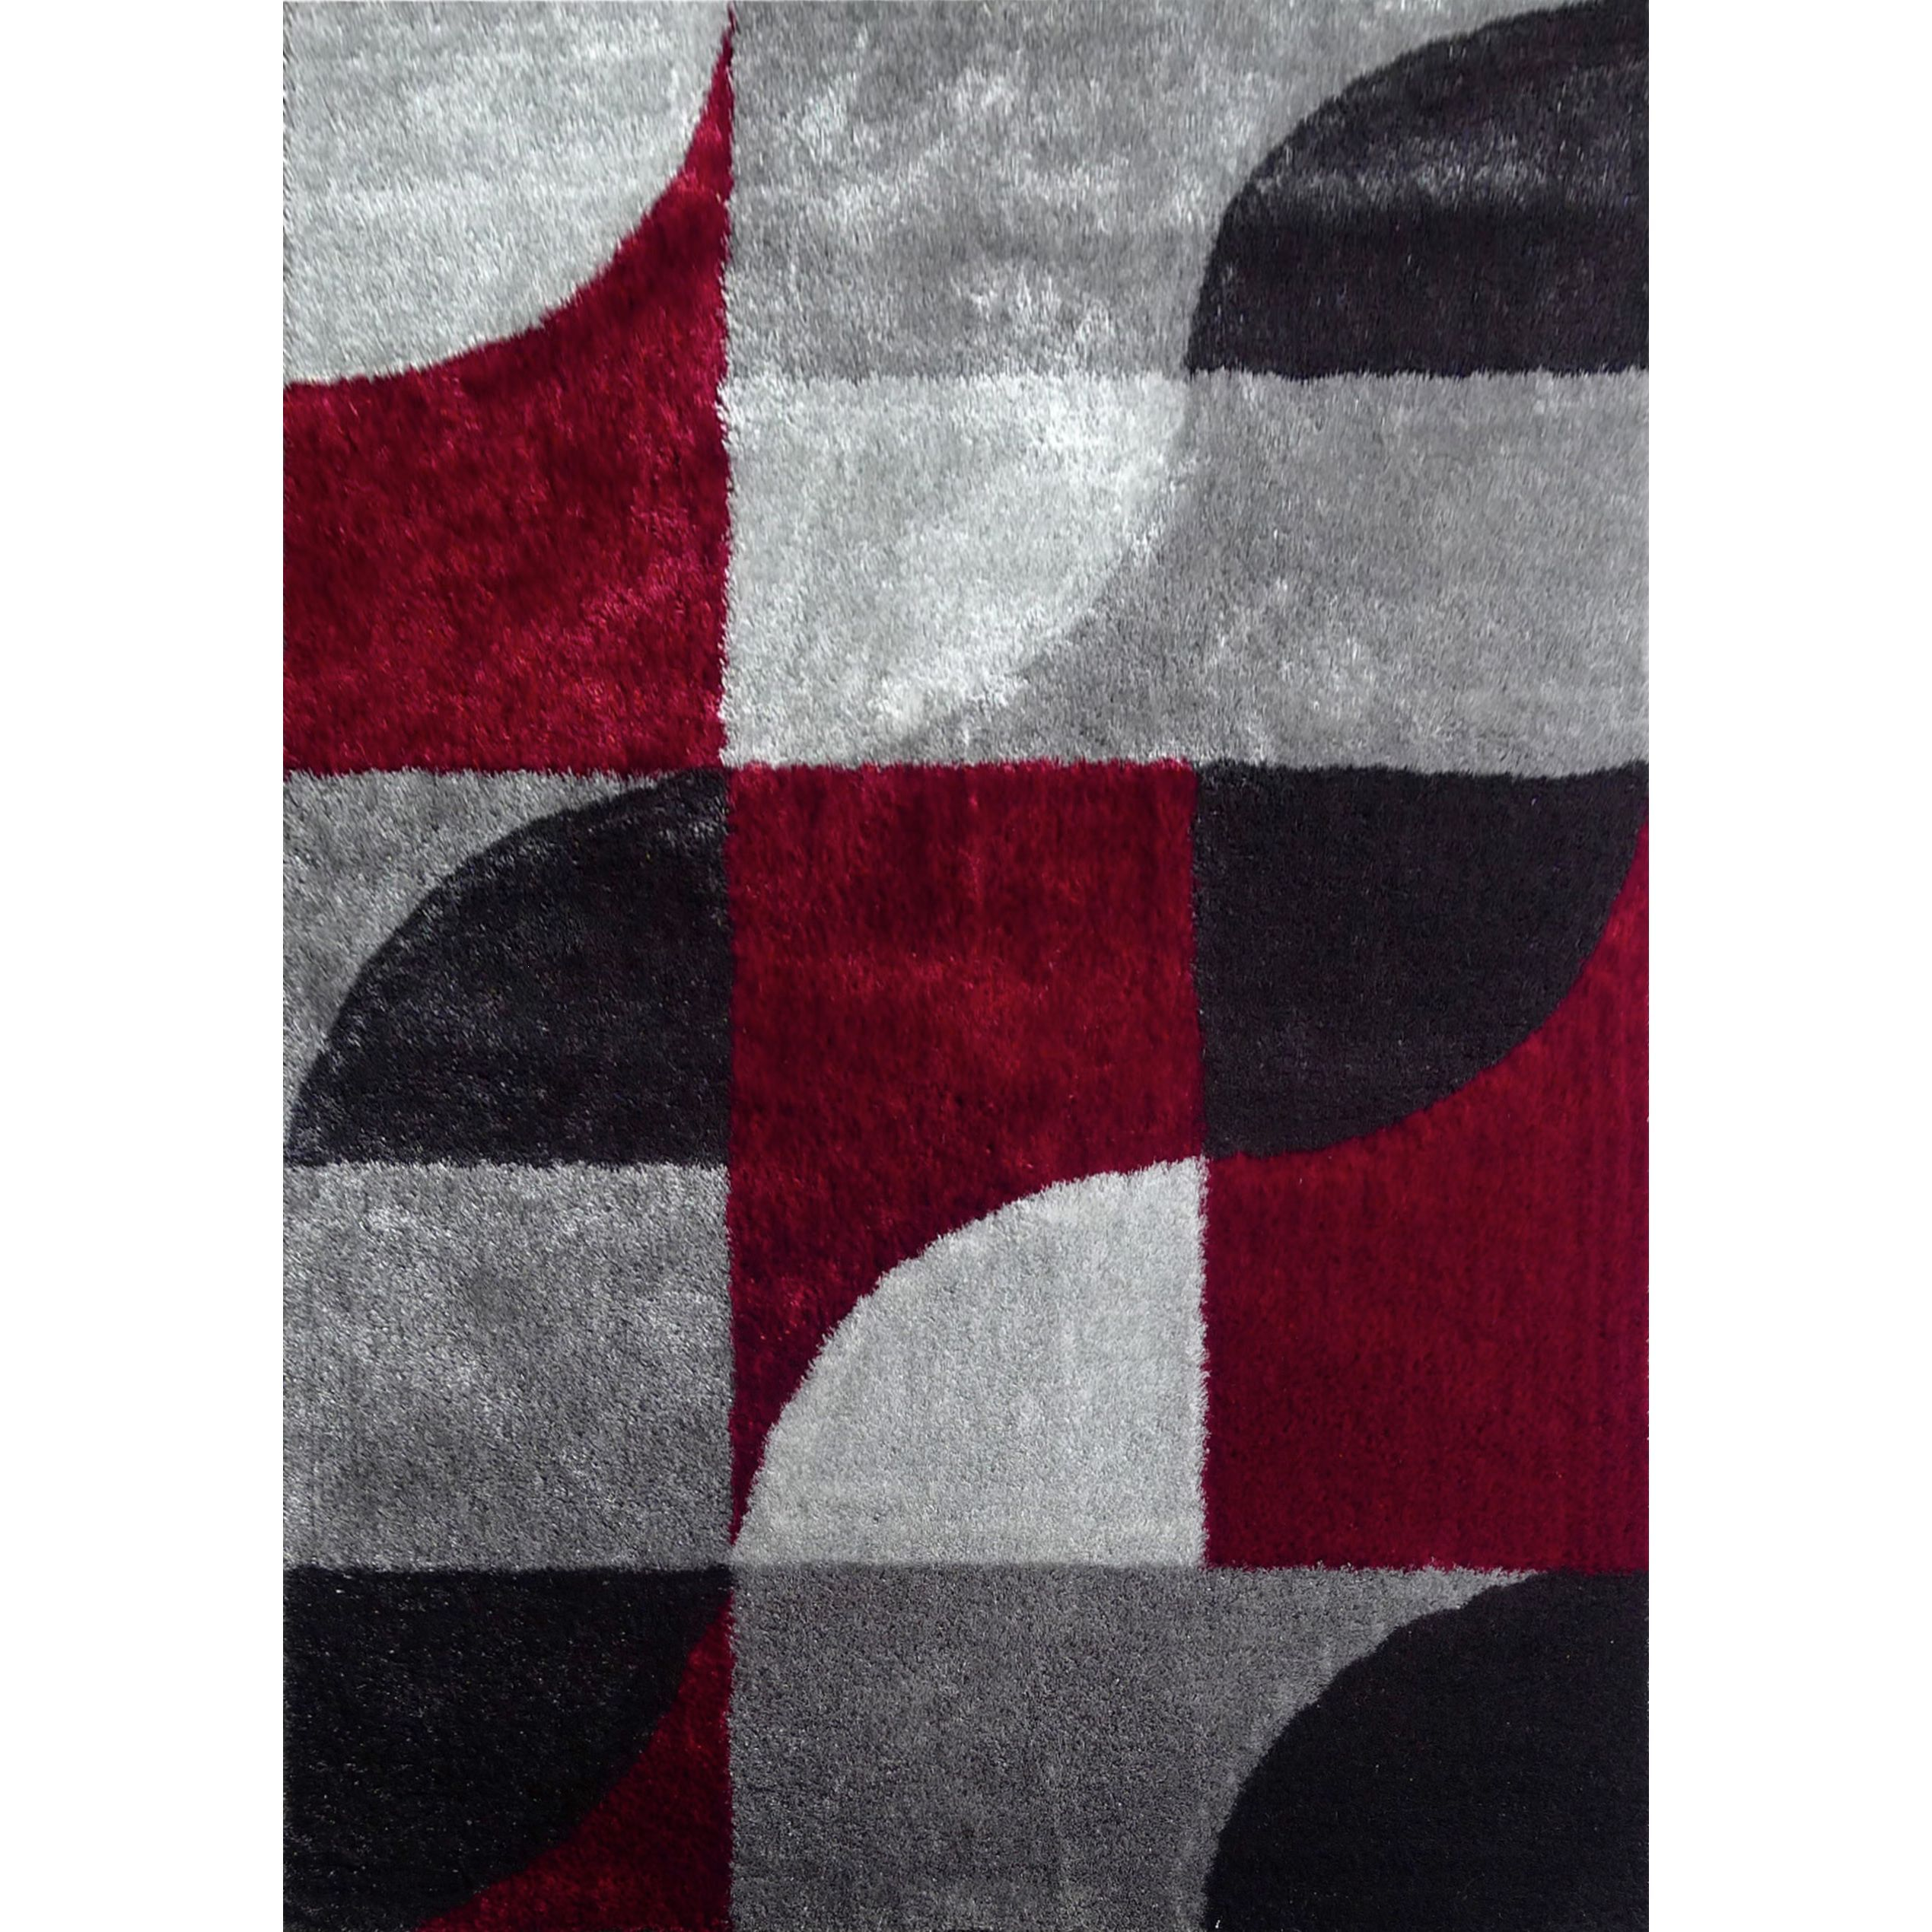 Hand Tufted Polyester Red With Light Silver To Dark Gray Shag Area